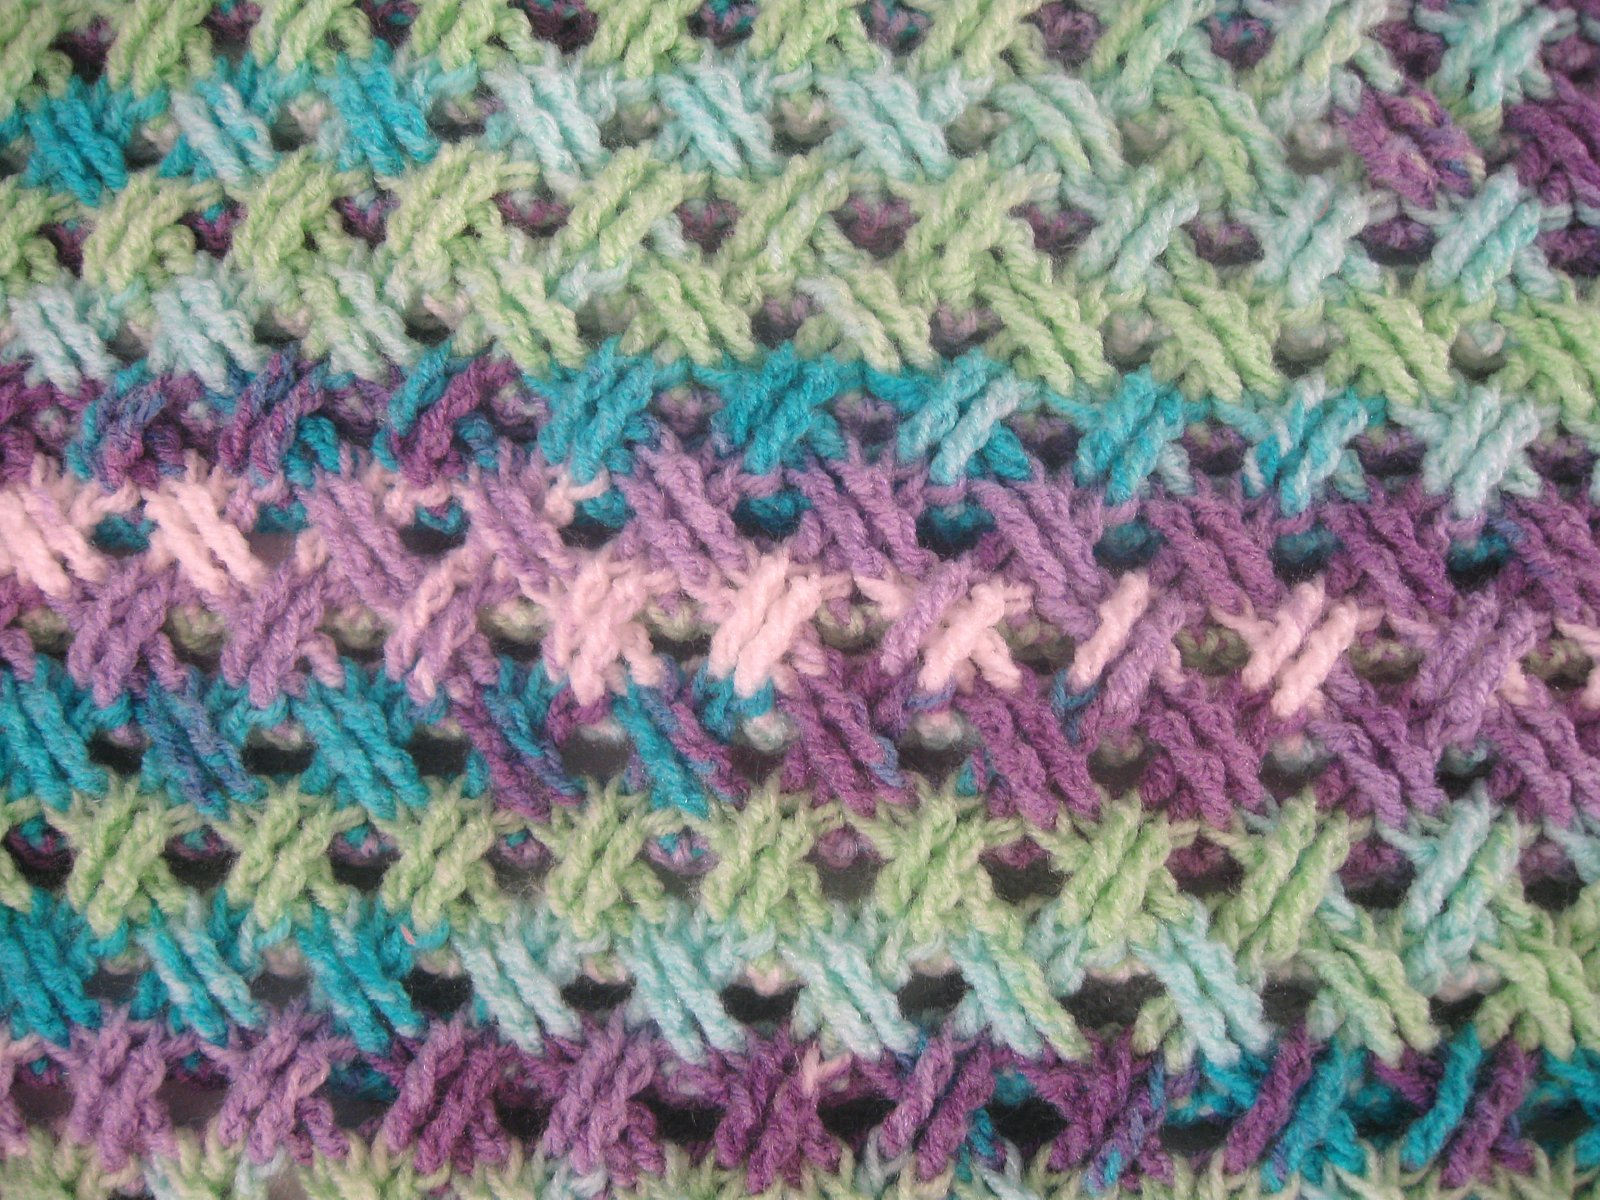 Crochet Stitches On Video : Crochet+Stitches Crochet Stitches